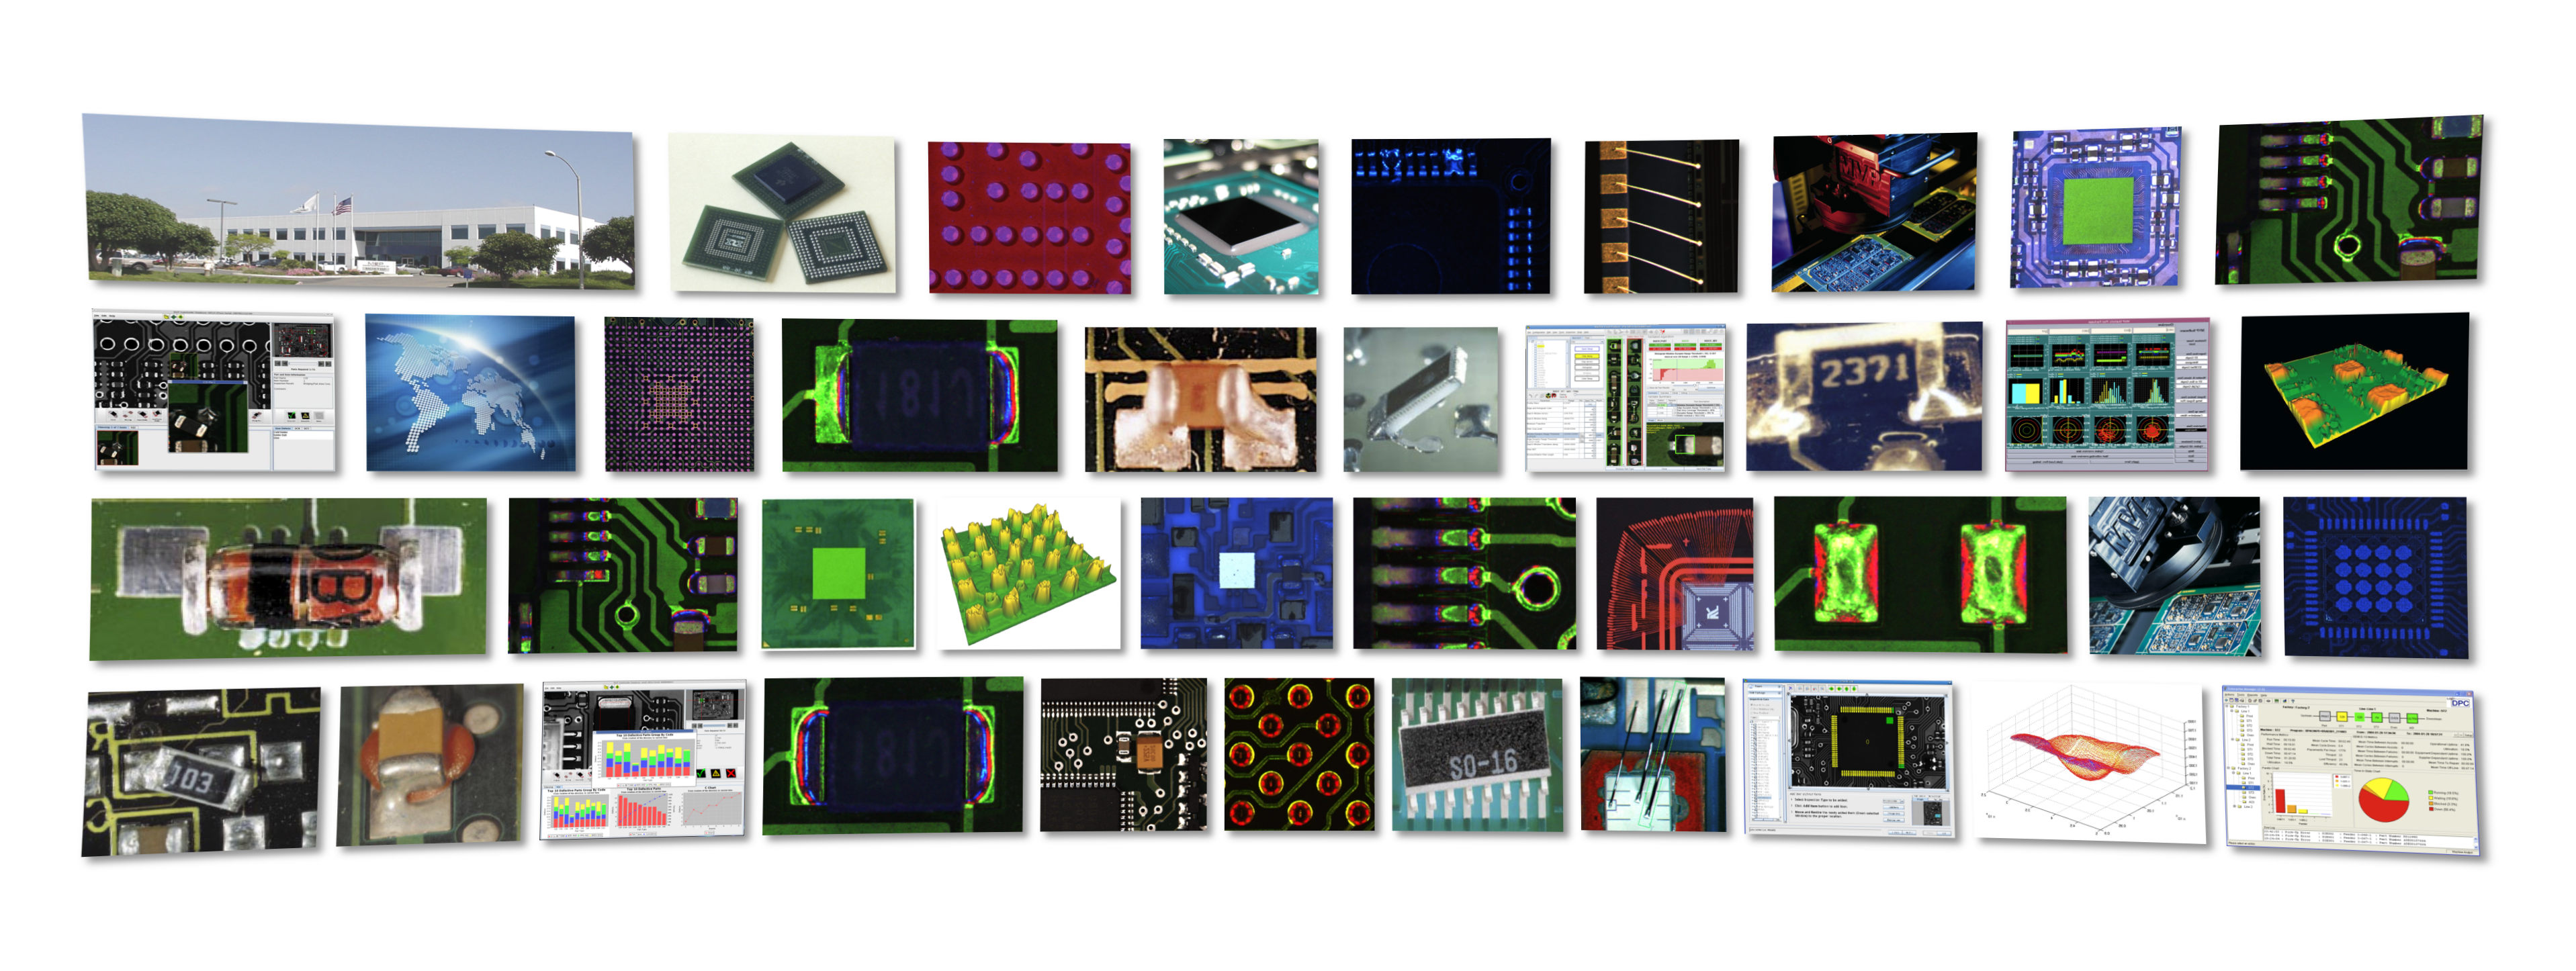 Mvp Aoi Inspection Automated Optical Smt Pcb And Solder Defects Electronics Manufacturing Machine Vision Products Are Leaders In